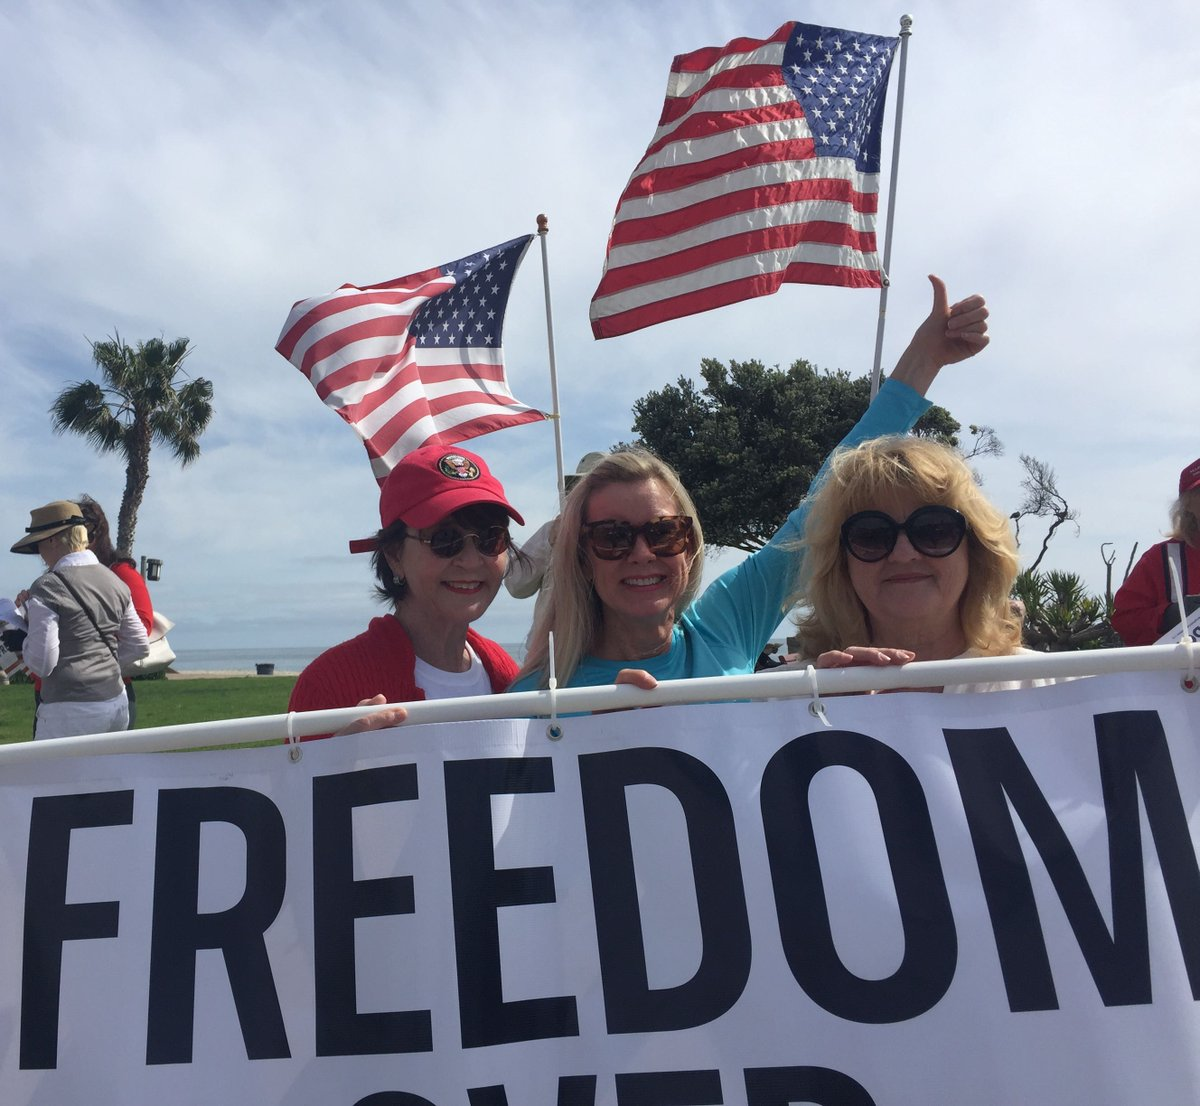 Linda Dorr and fellow #TeaParty activists were celebrating freedom in Laguna Beach, CA today!  #StopSocialismChooseFreedom #TeaParty10 <br>http://pic.twitter.com/gyo83OVWX6